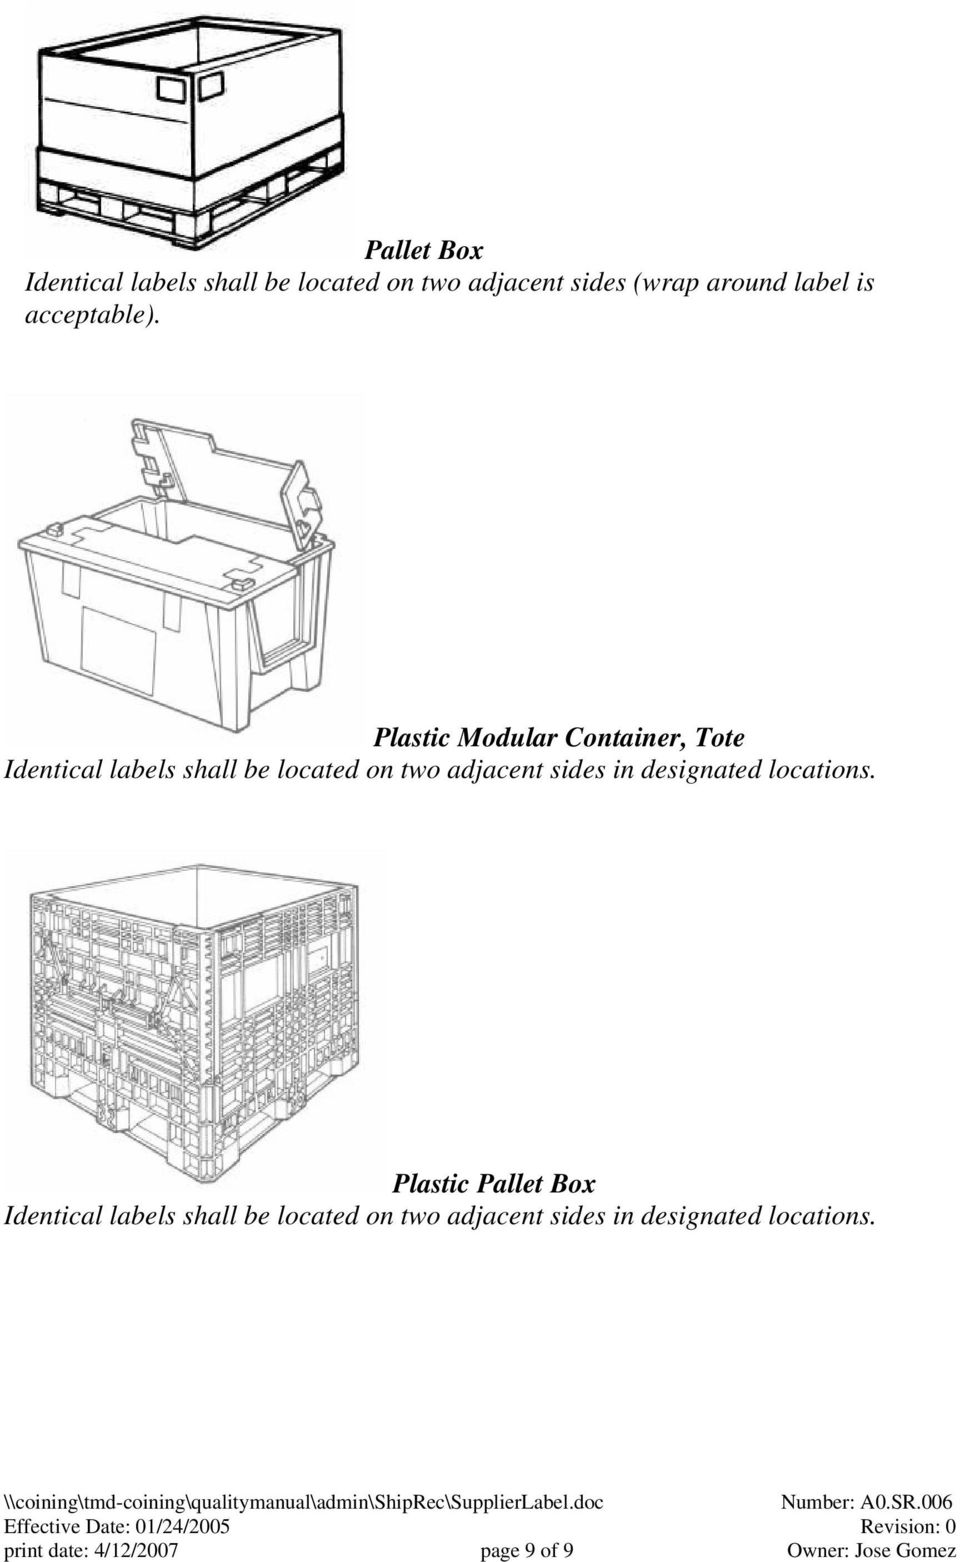 Plastic Modular Container, Tote Identical labels shall be located on two adjacent sides in